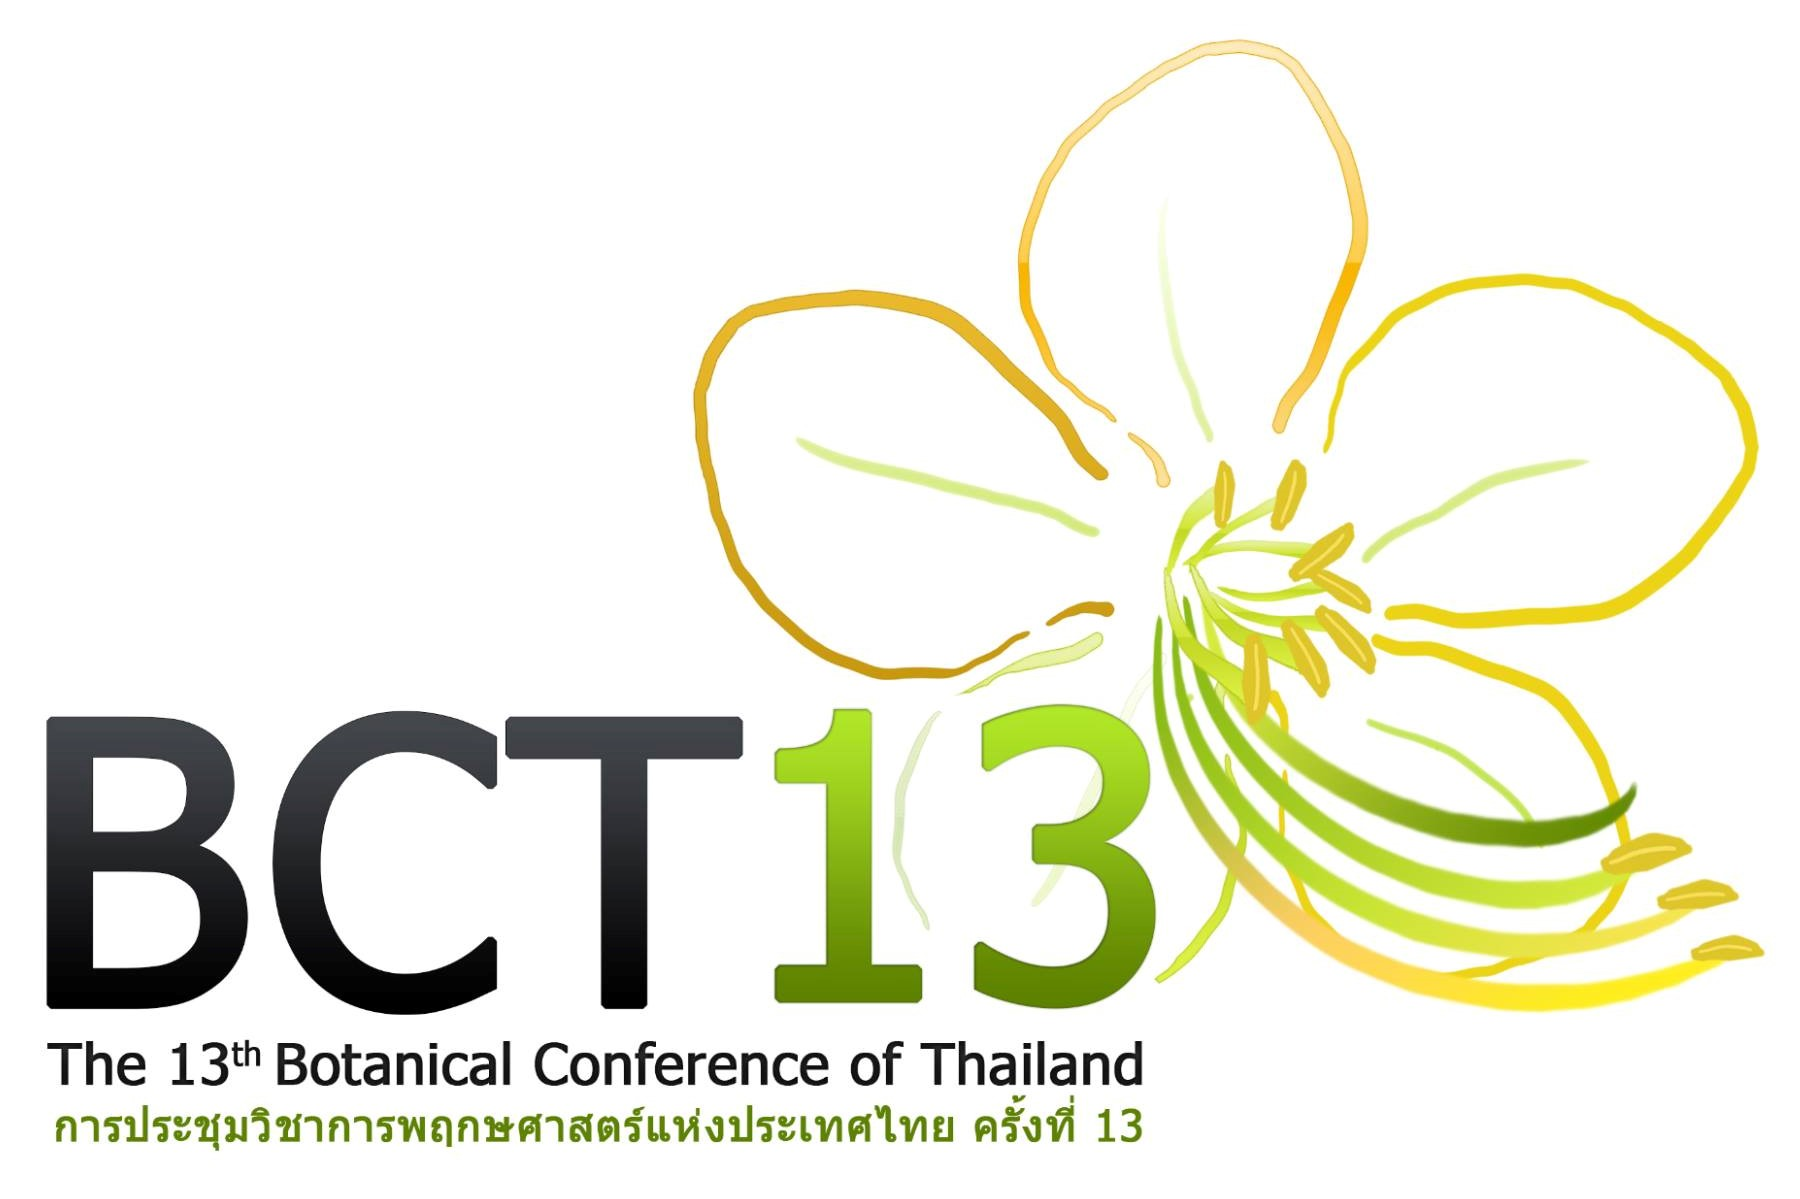 13th Botanical Conference of Thailand